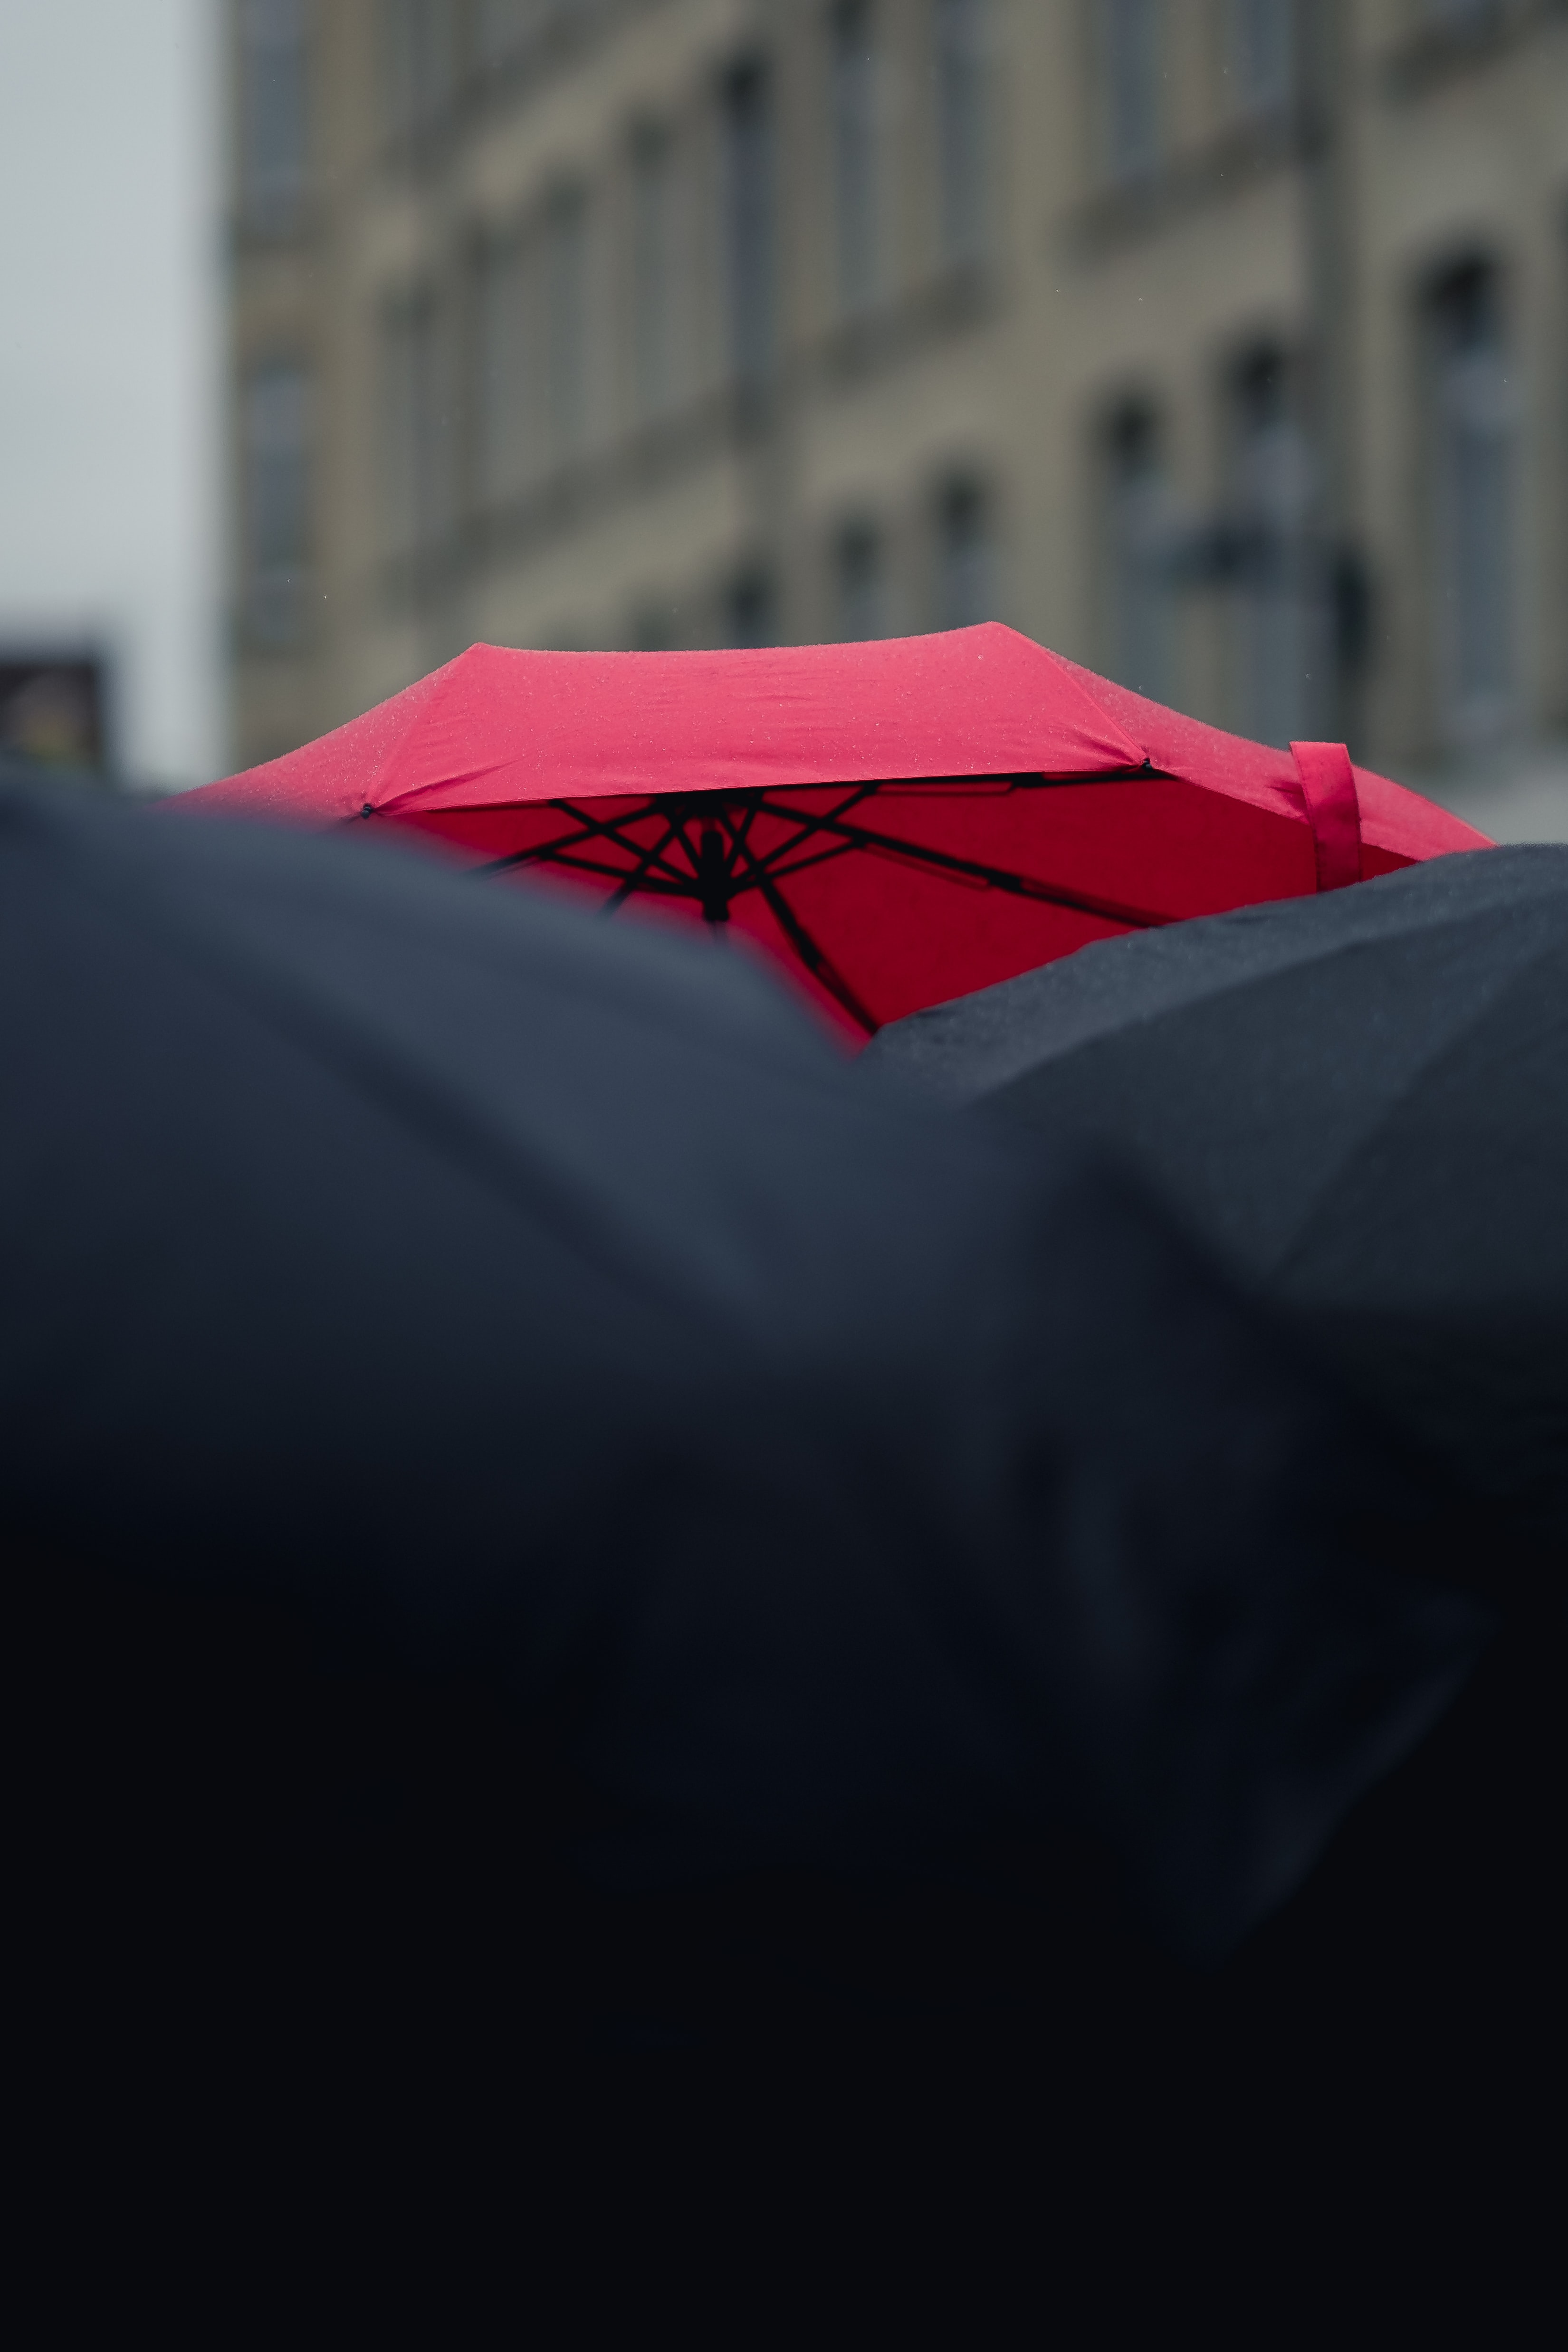 A red umbrella peeking out above a crowd of black umbrellas